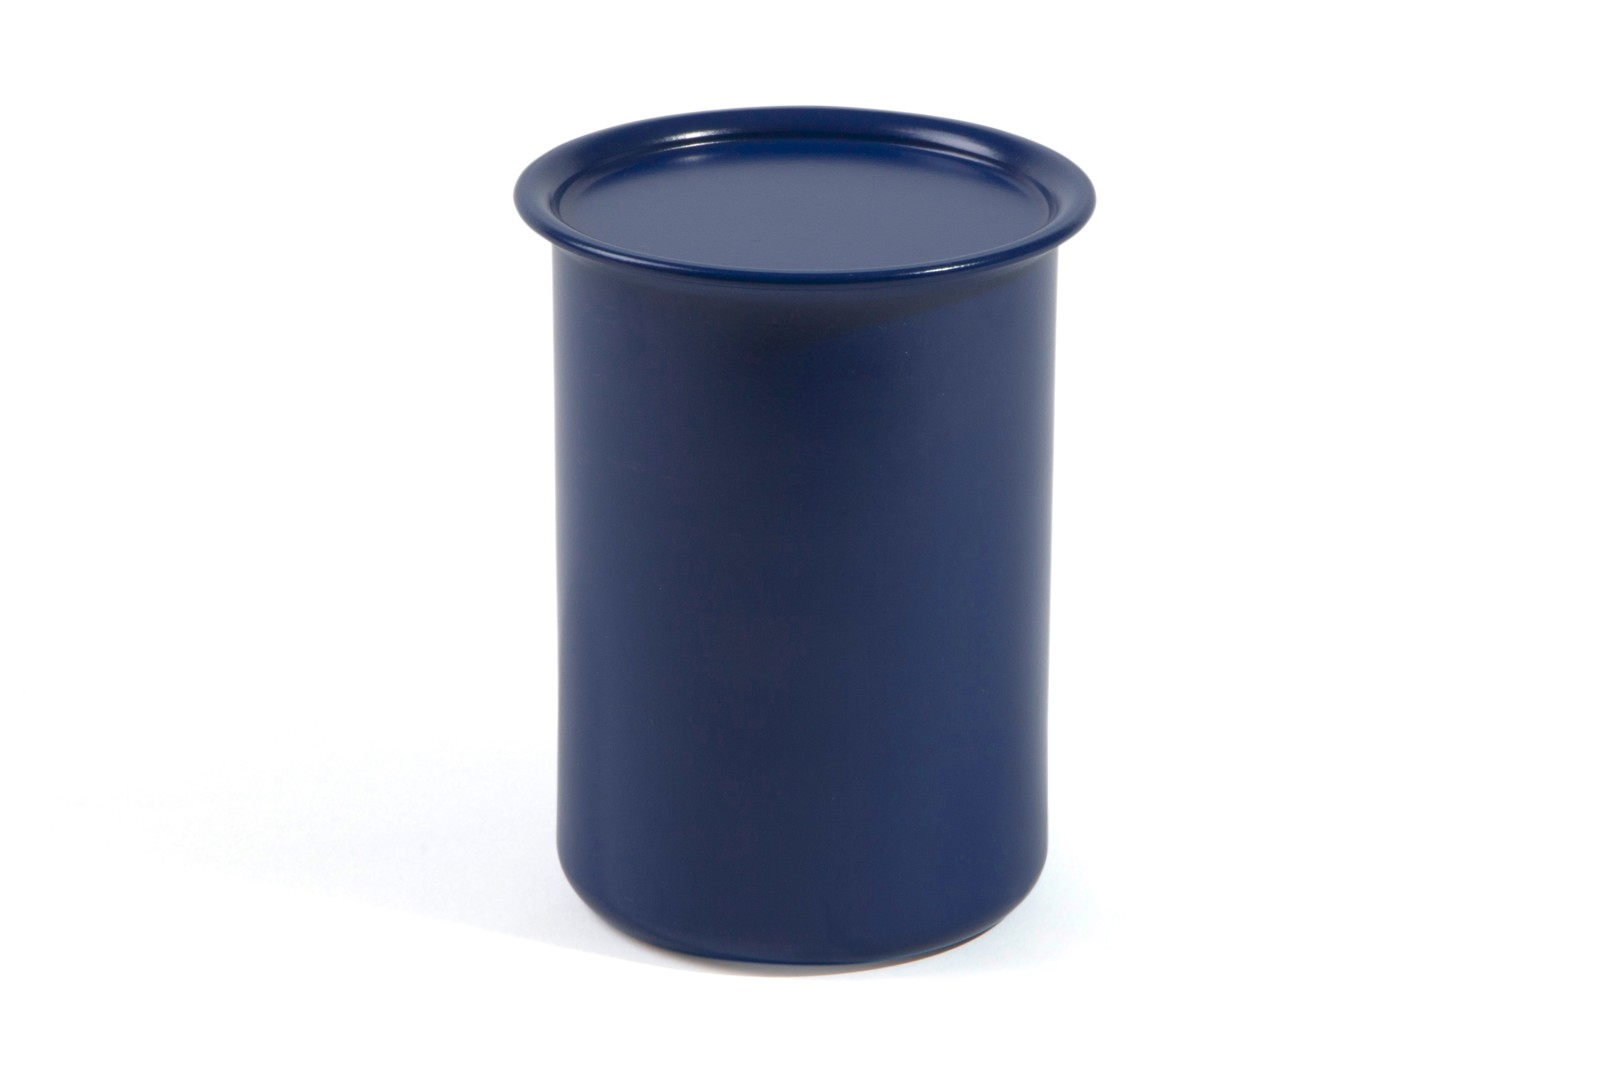 Ayasa Storage Container Blue with Metal Lid, 0.75L